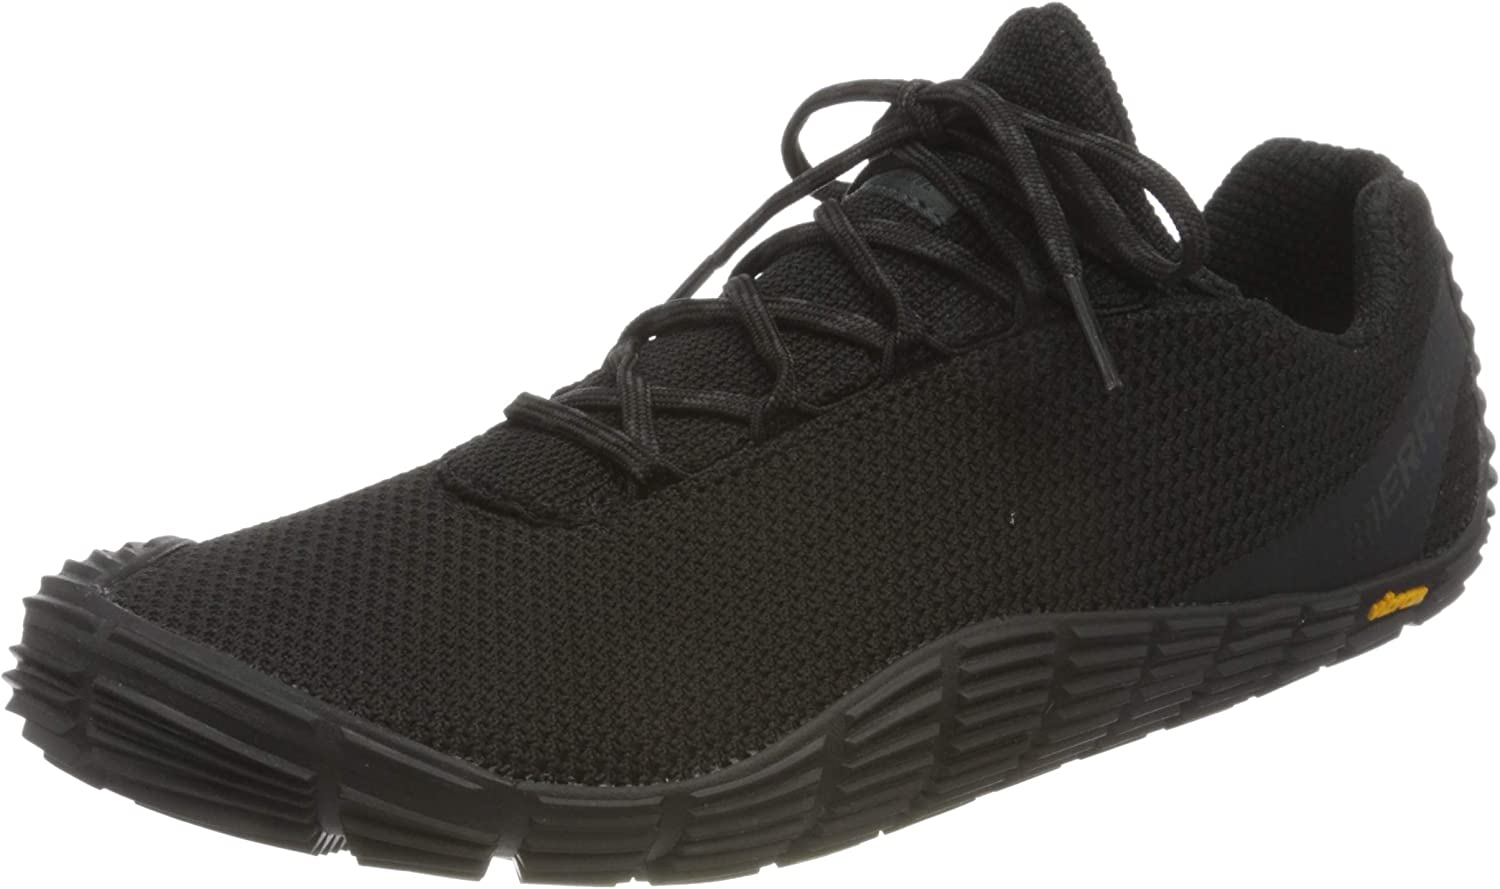 MERRELL Move Glove J16737 Barefoot Training Trail Running Trainers Shoes Mens